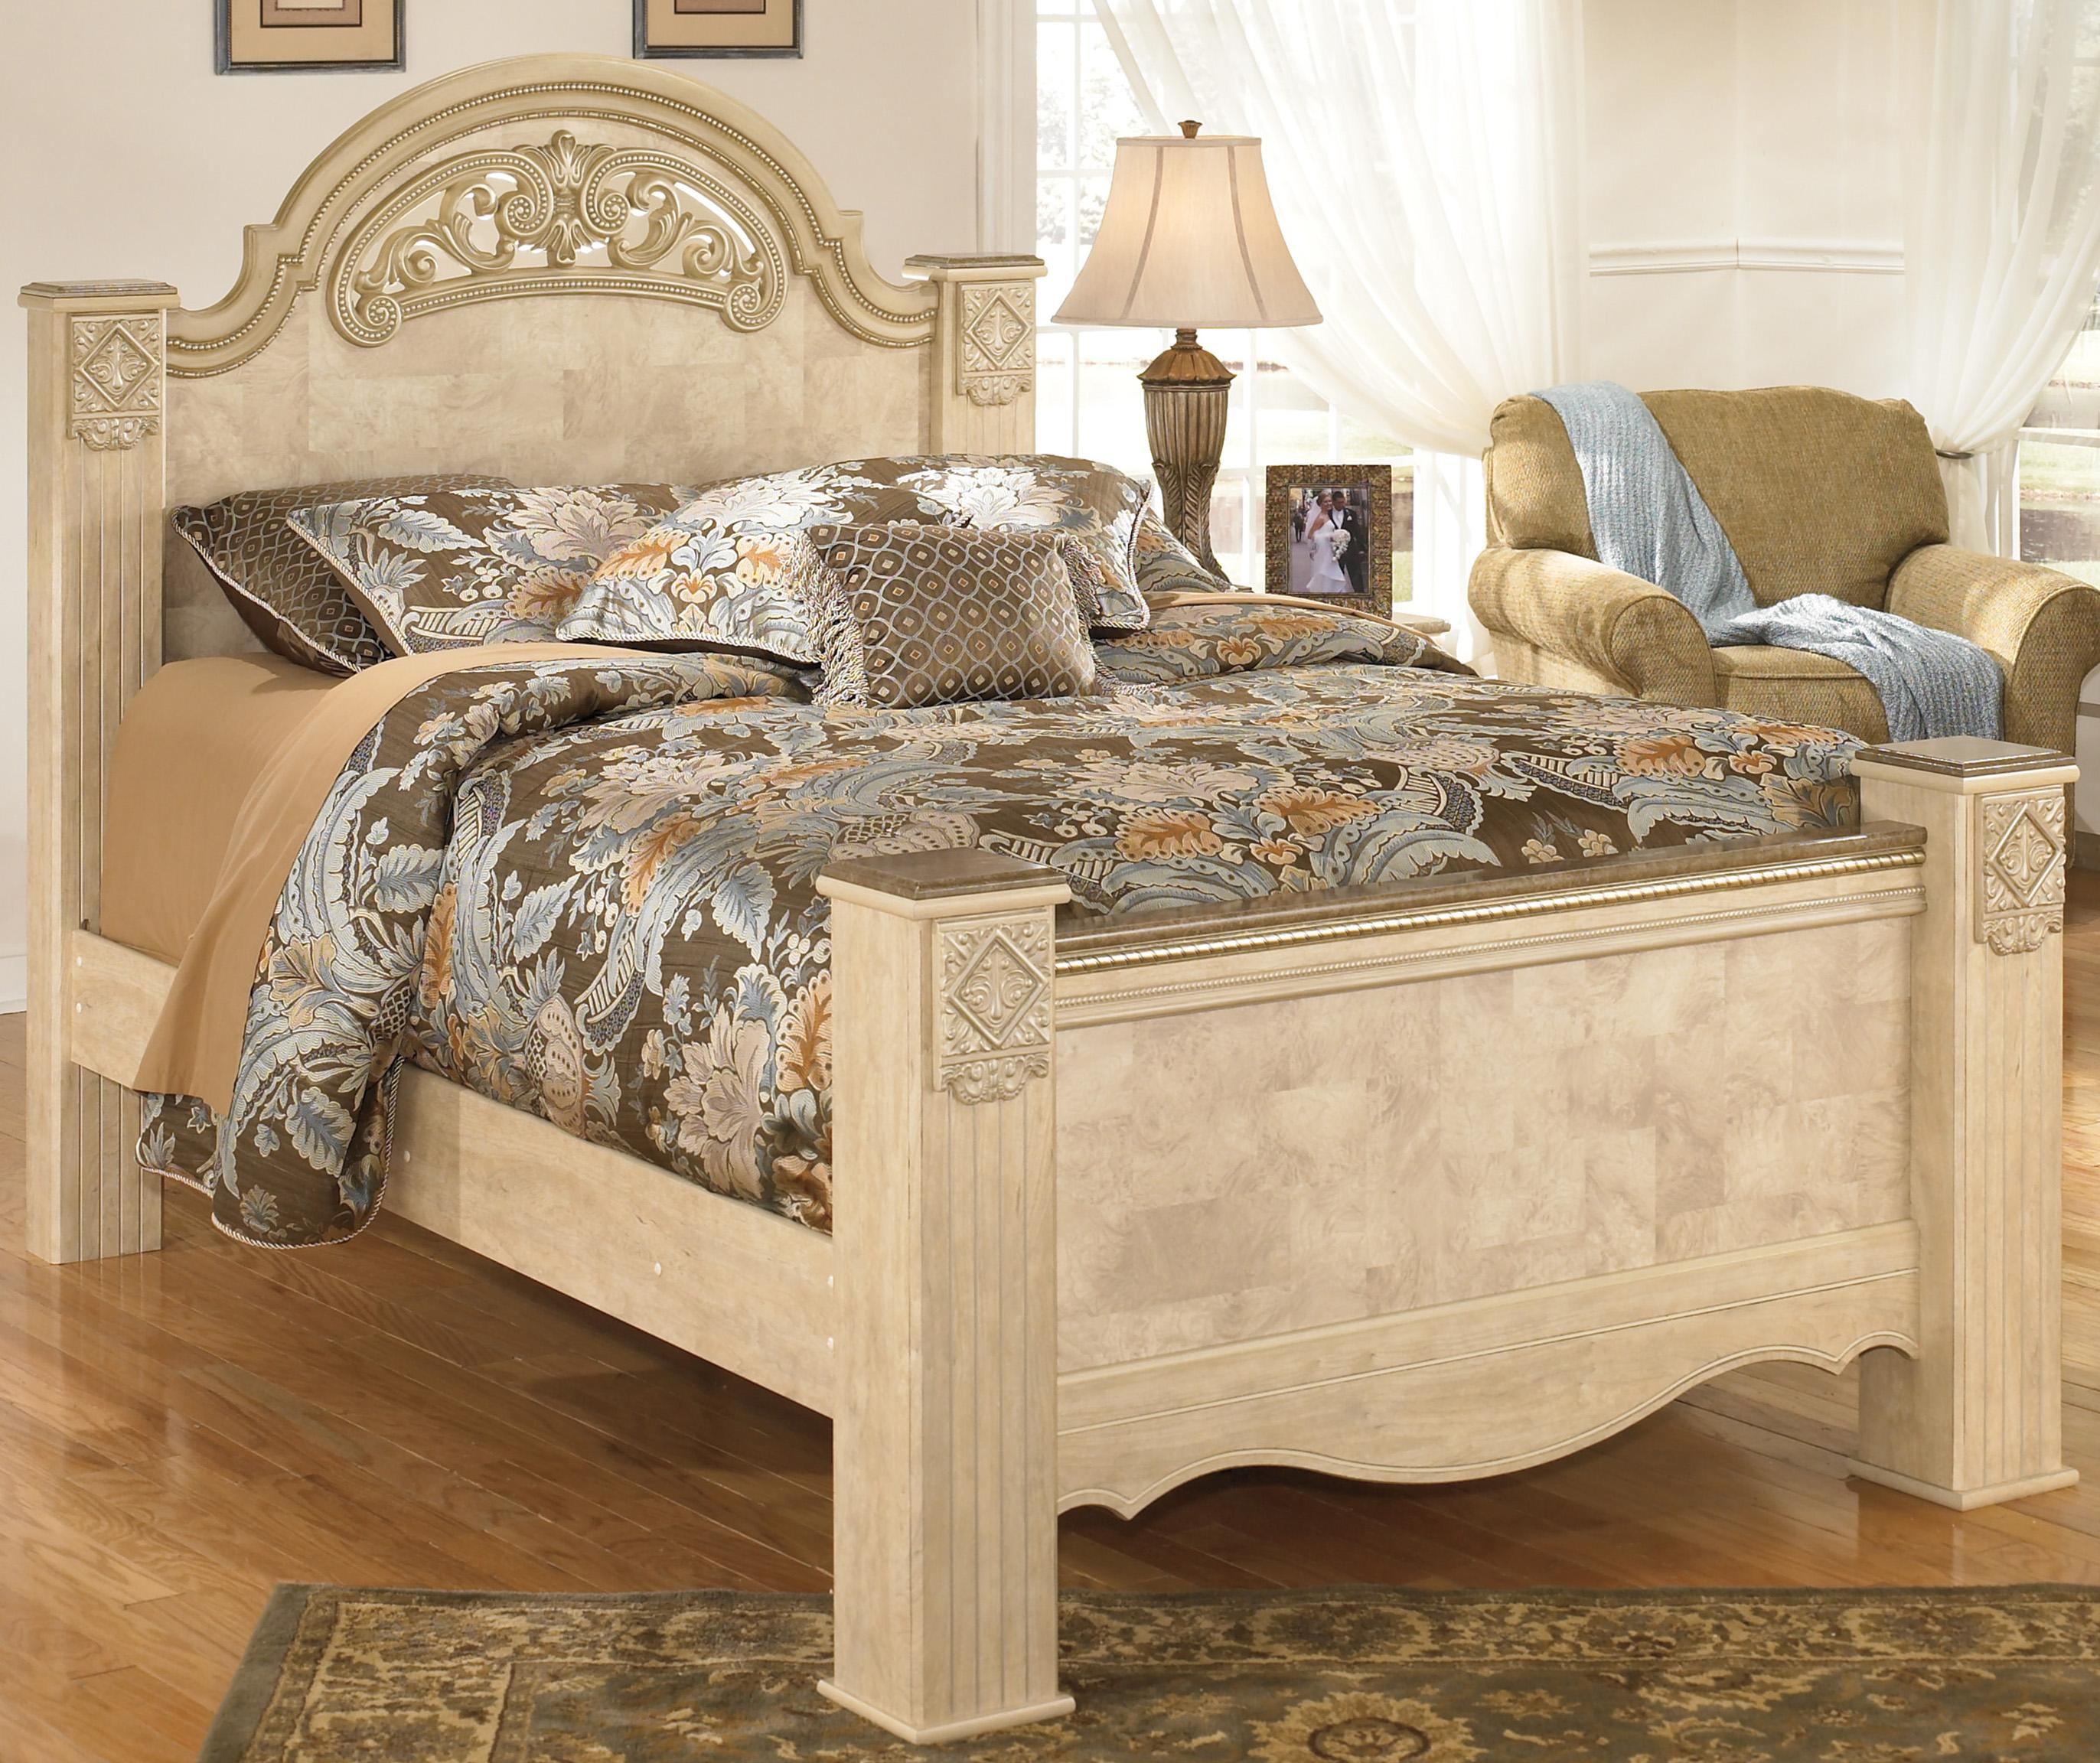 Signature Design by Ashley Saveaha Queen Poster Bed - Item Number: B346-67+64+98